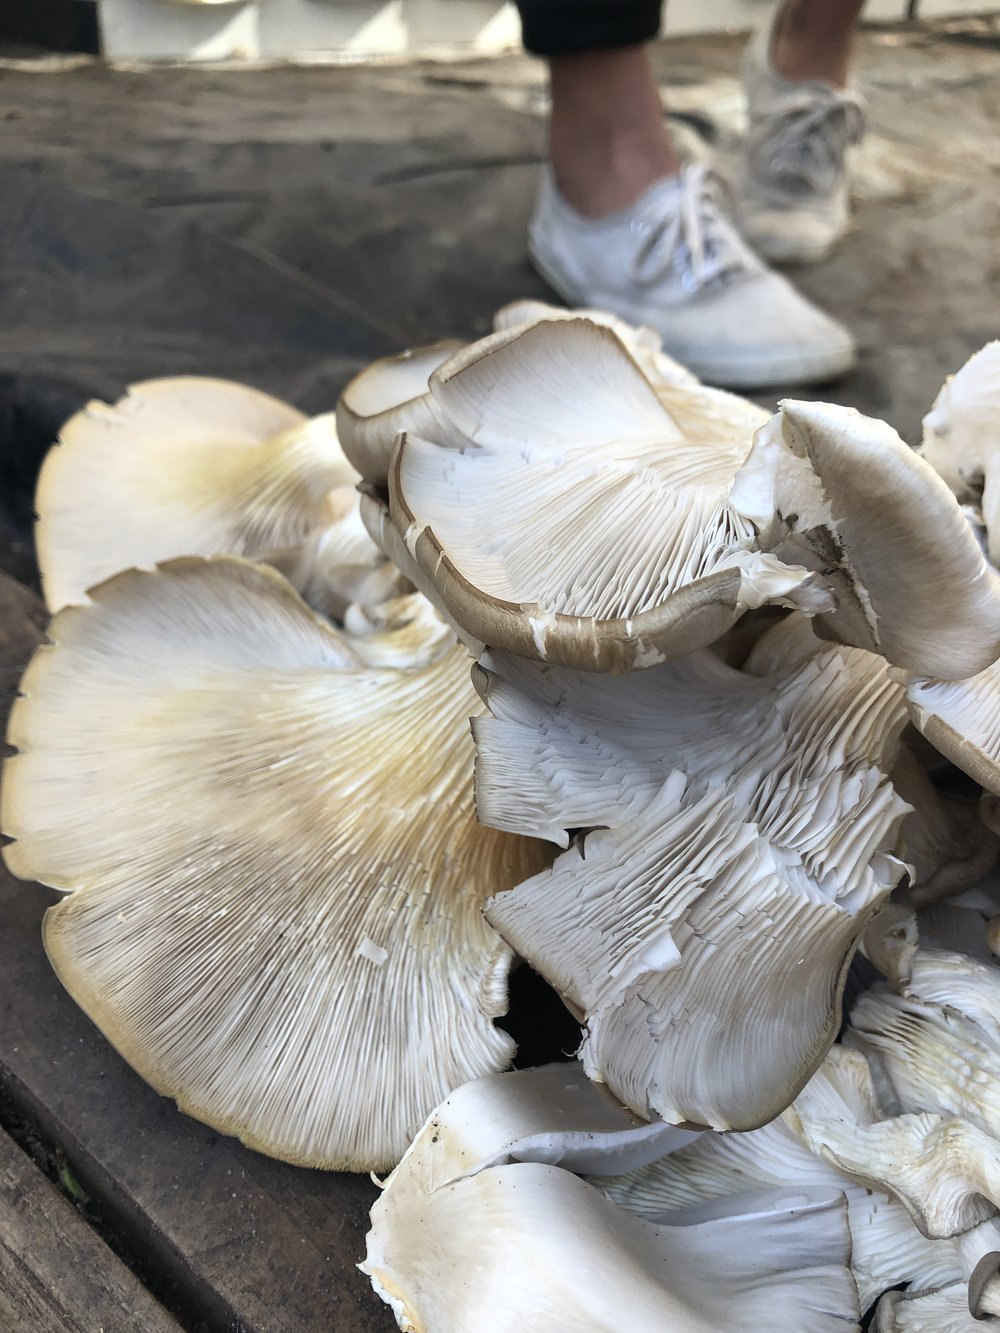 Harvested oyster mushrooms